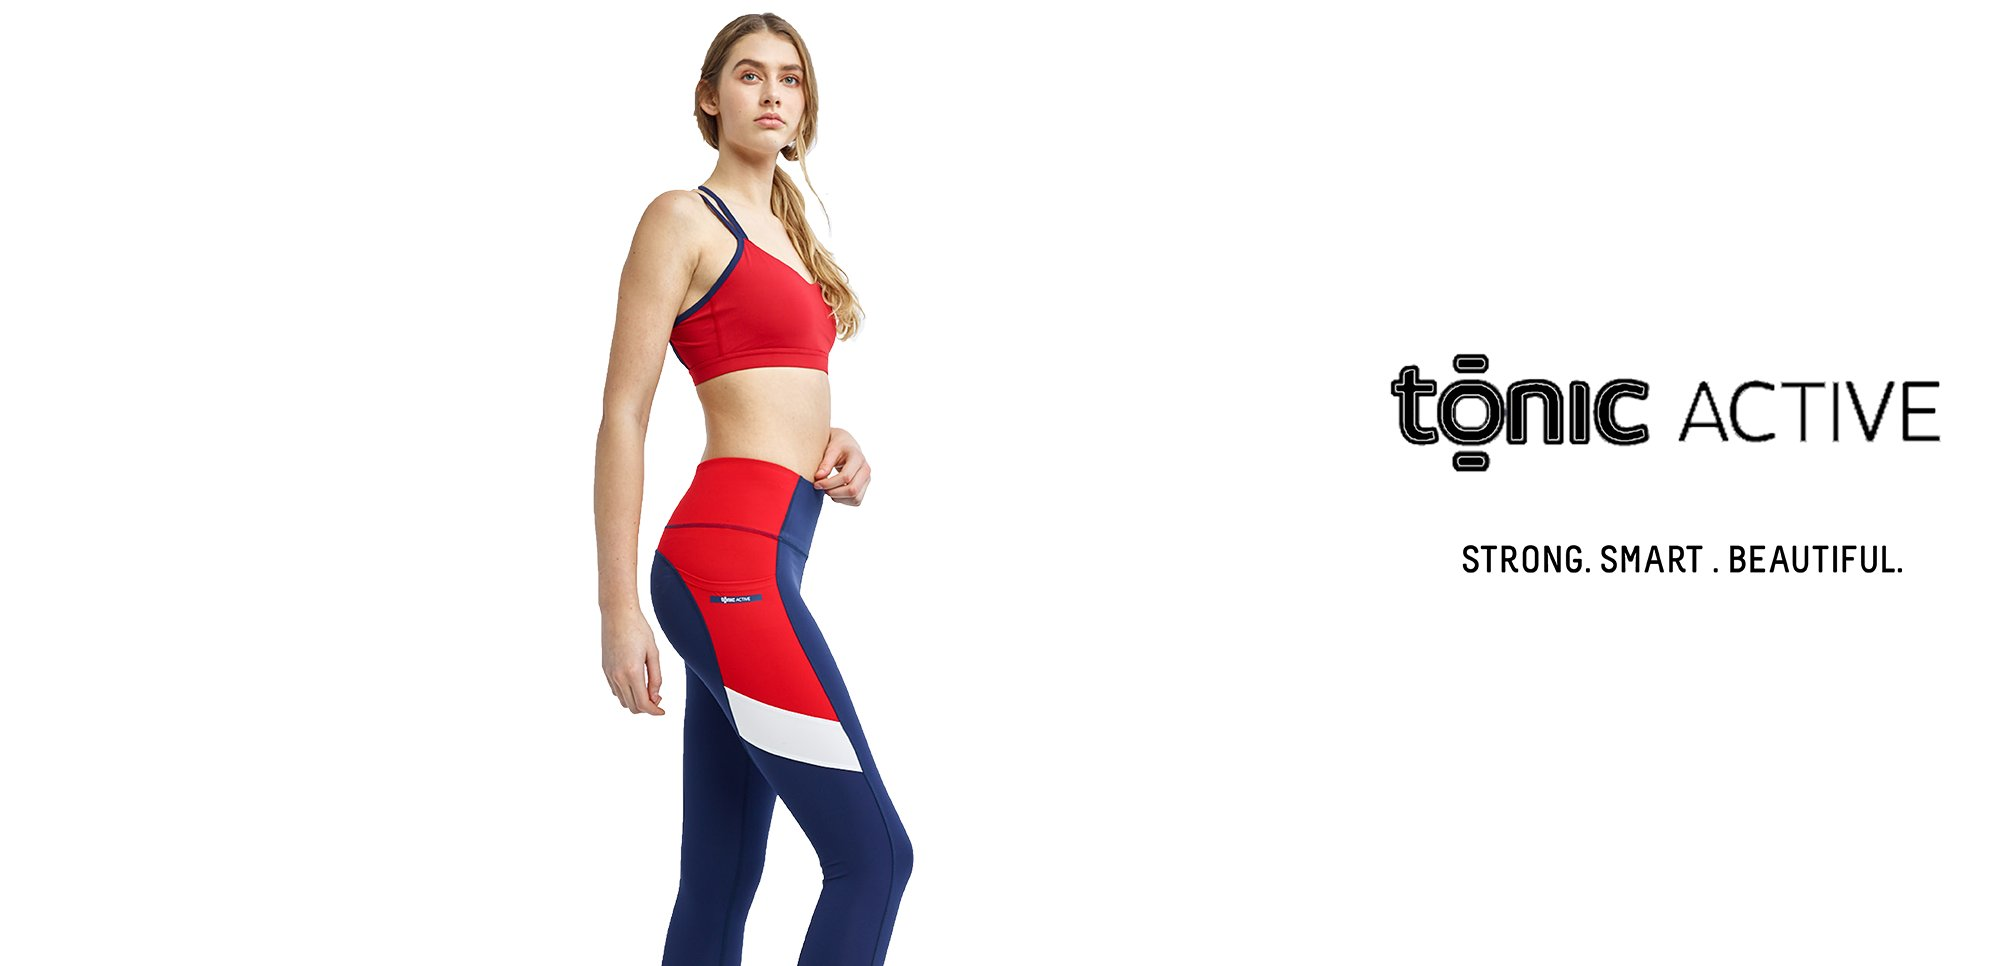 Tonic Active Tennis & Training Activewear